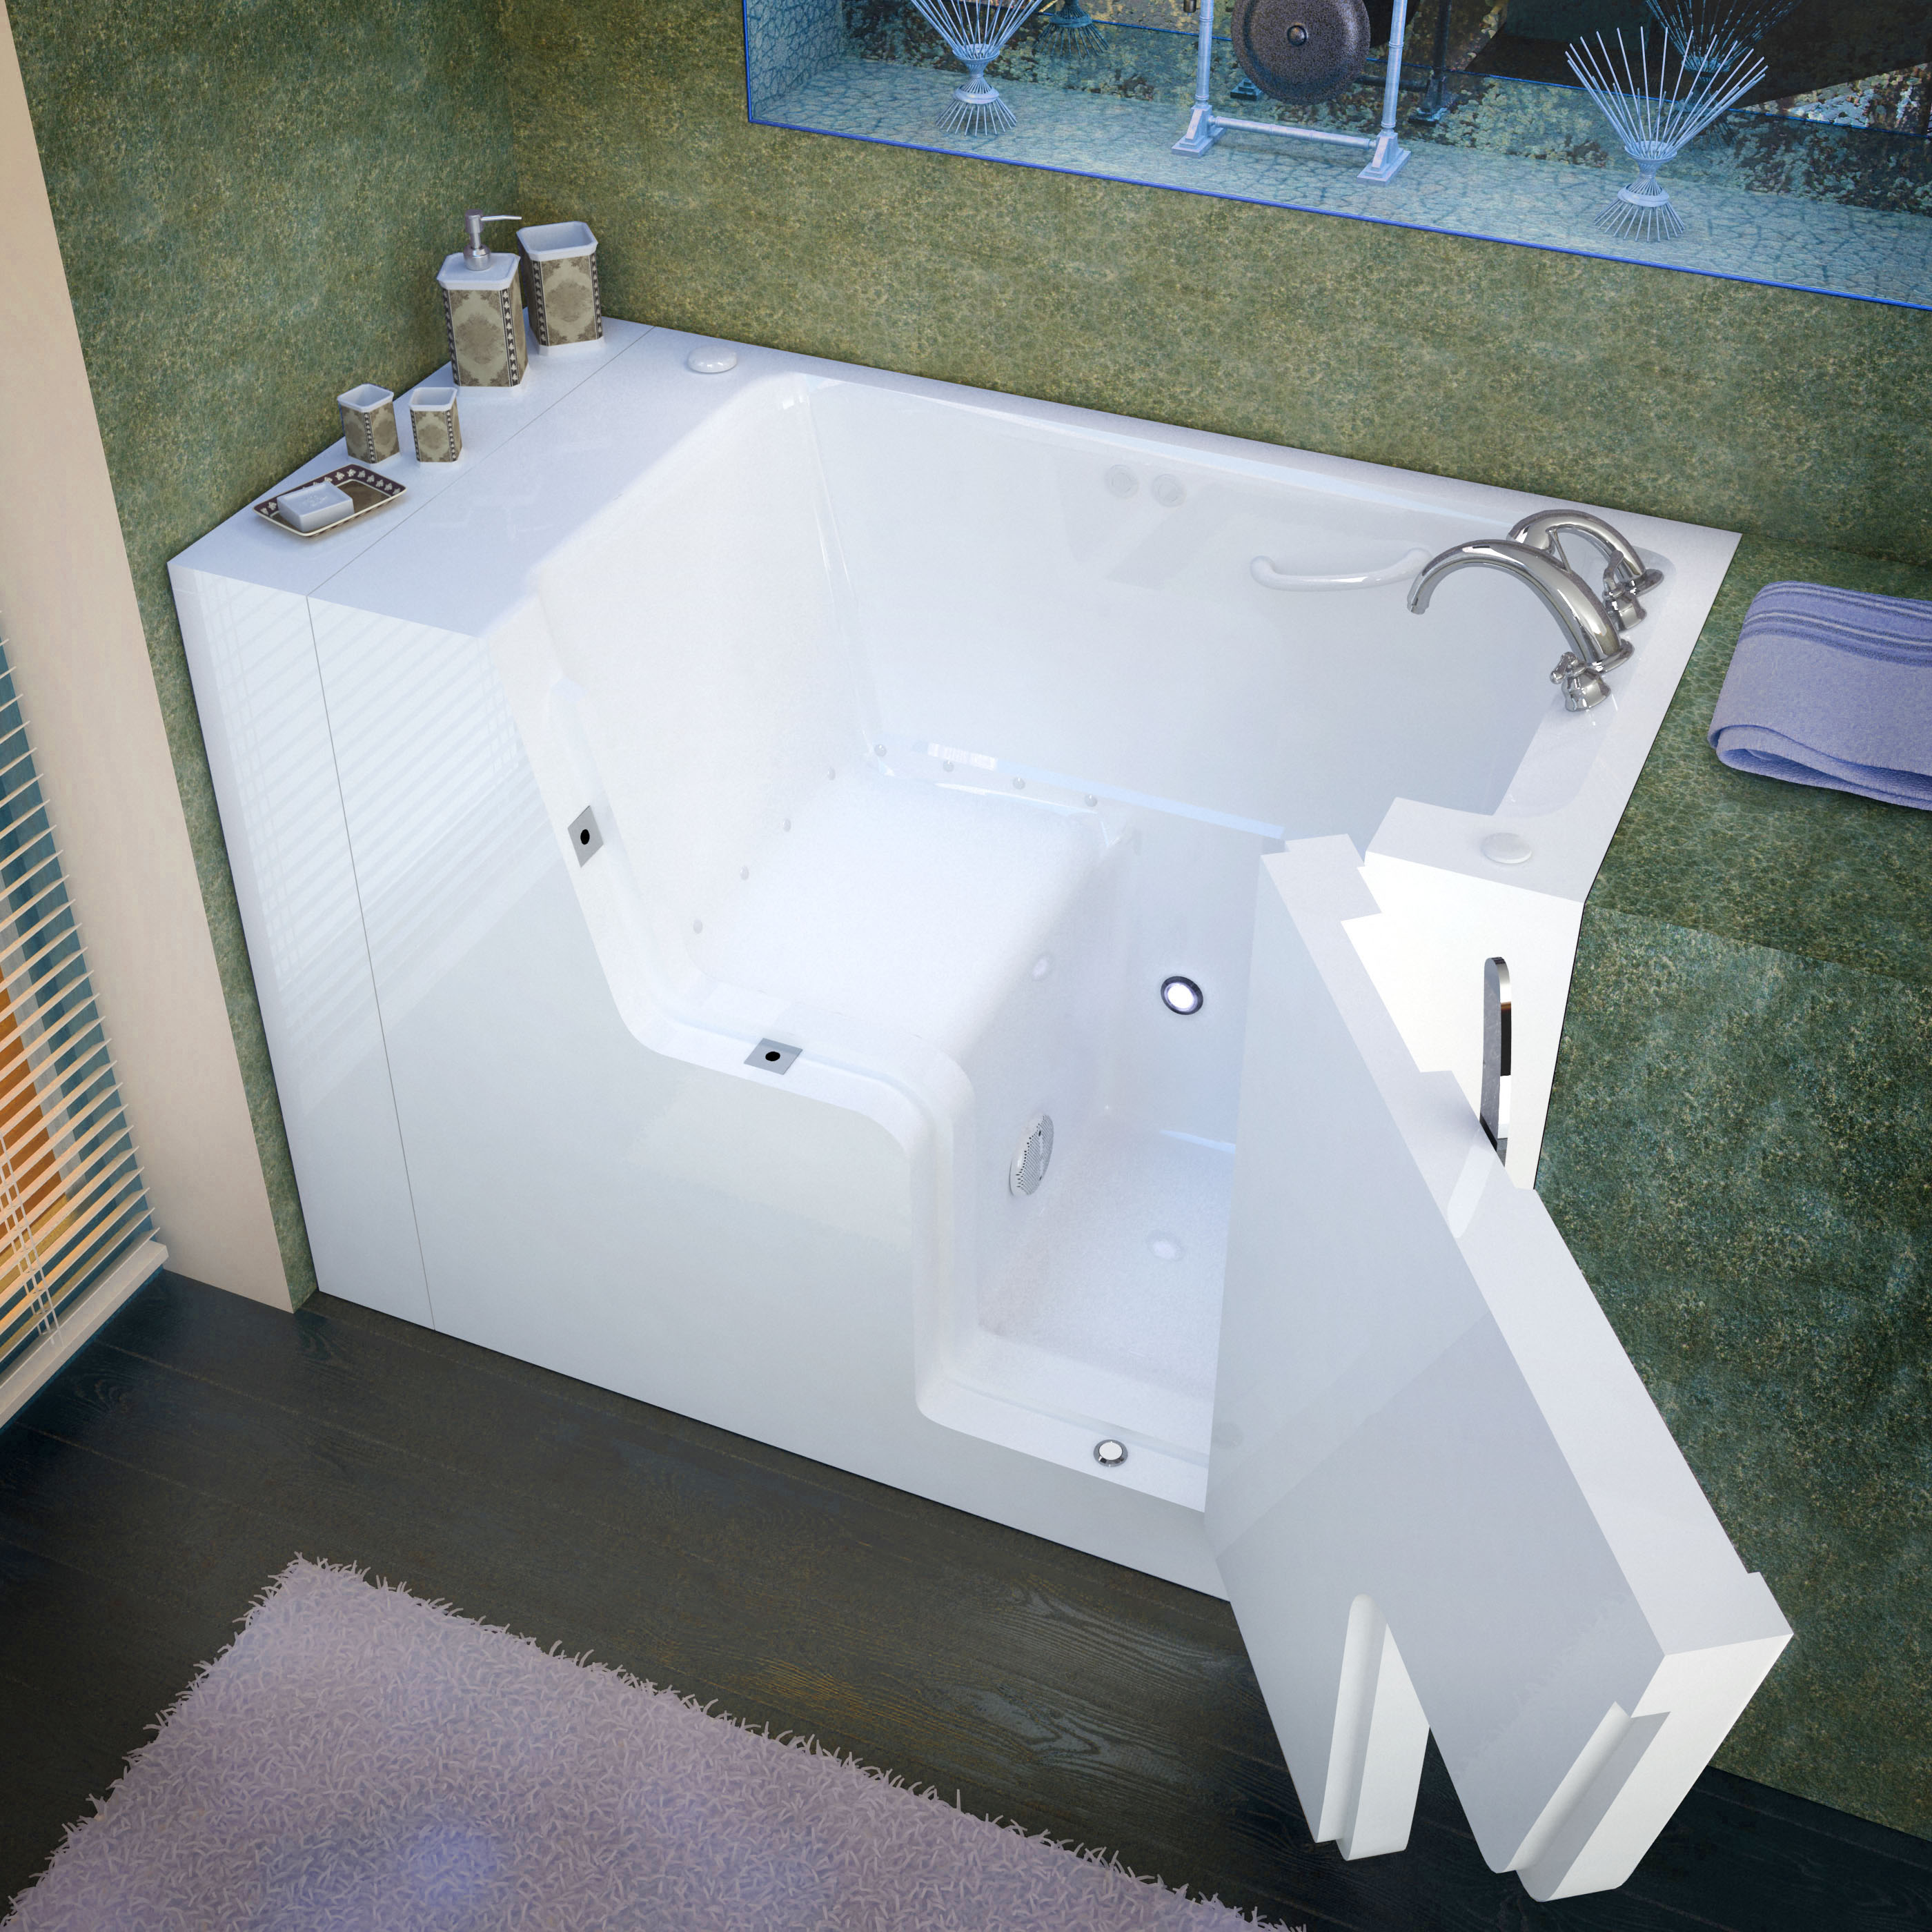 29x53 Right Drain White Air Jetted Wheelchair Accessible Walk-In Bathtub